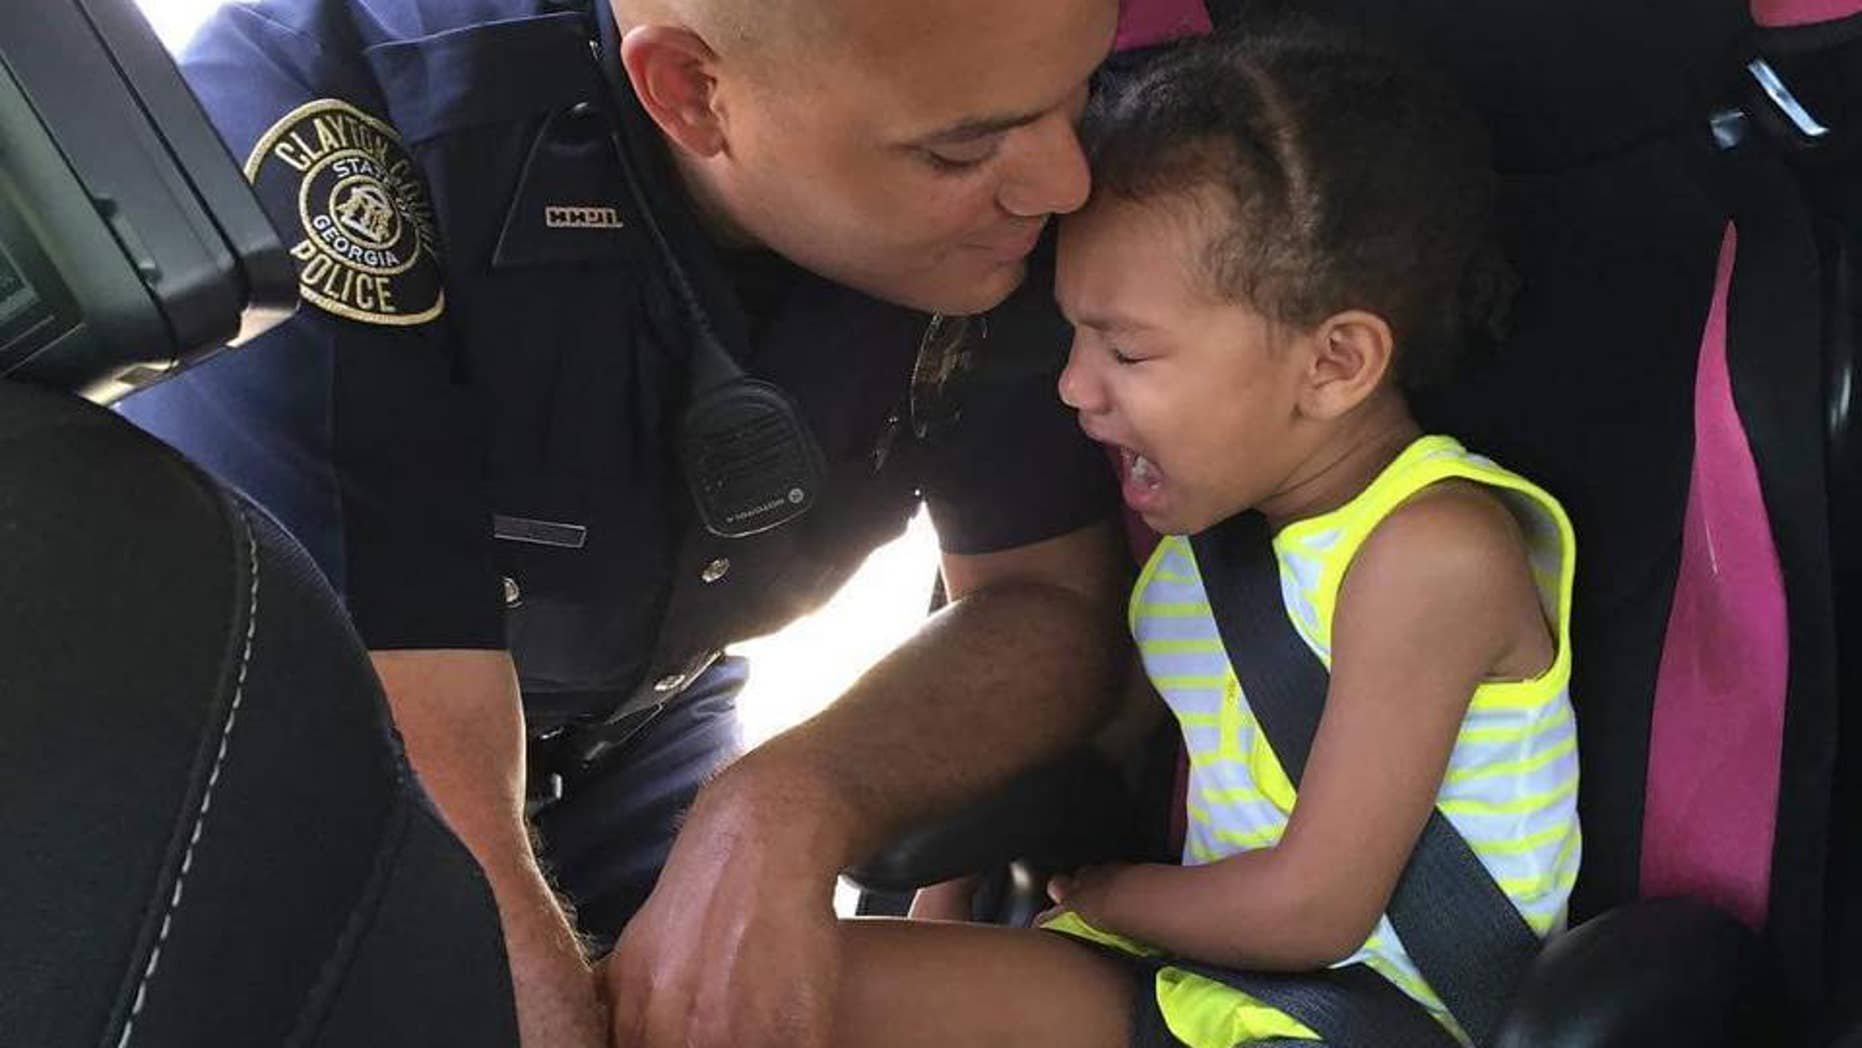 A touching photo shows a goodbye between Officer Rob Fleming and his young daughter.